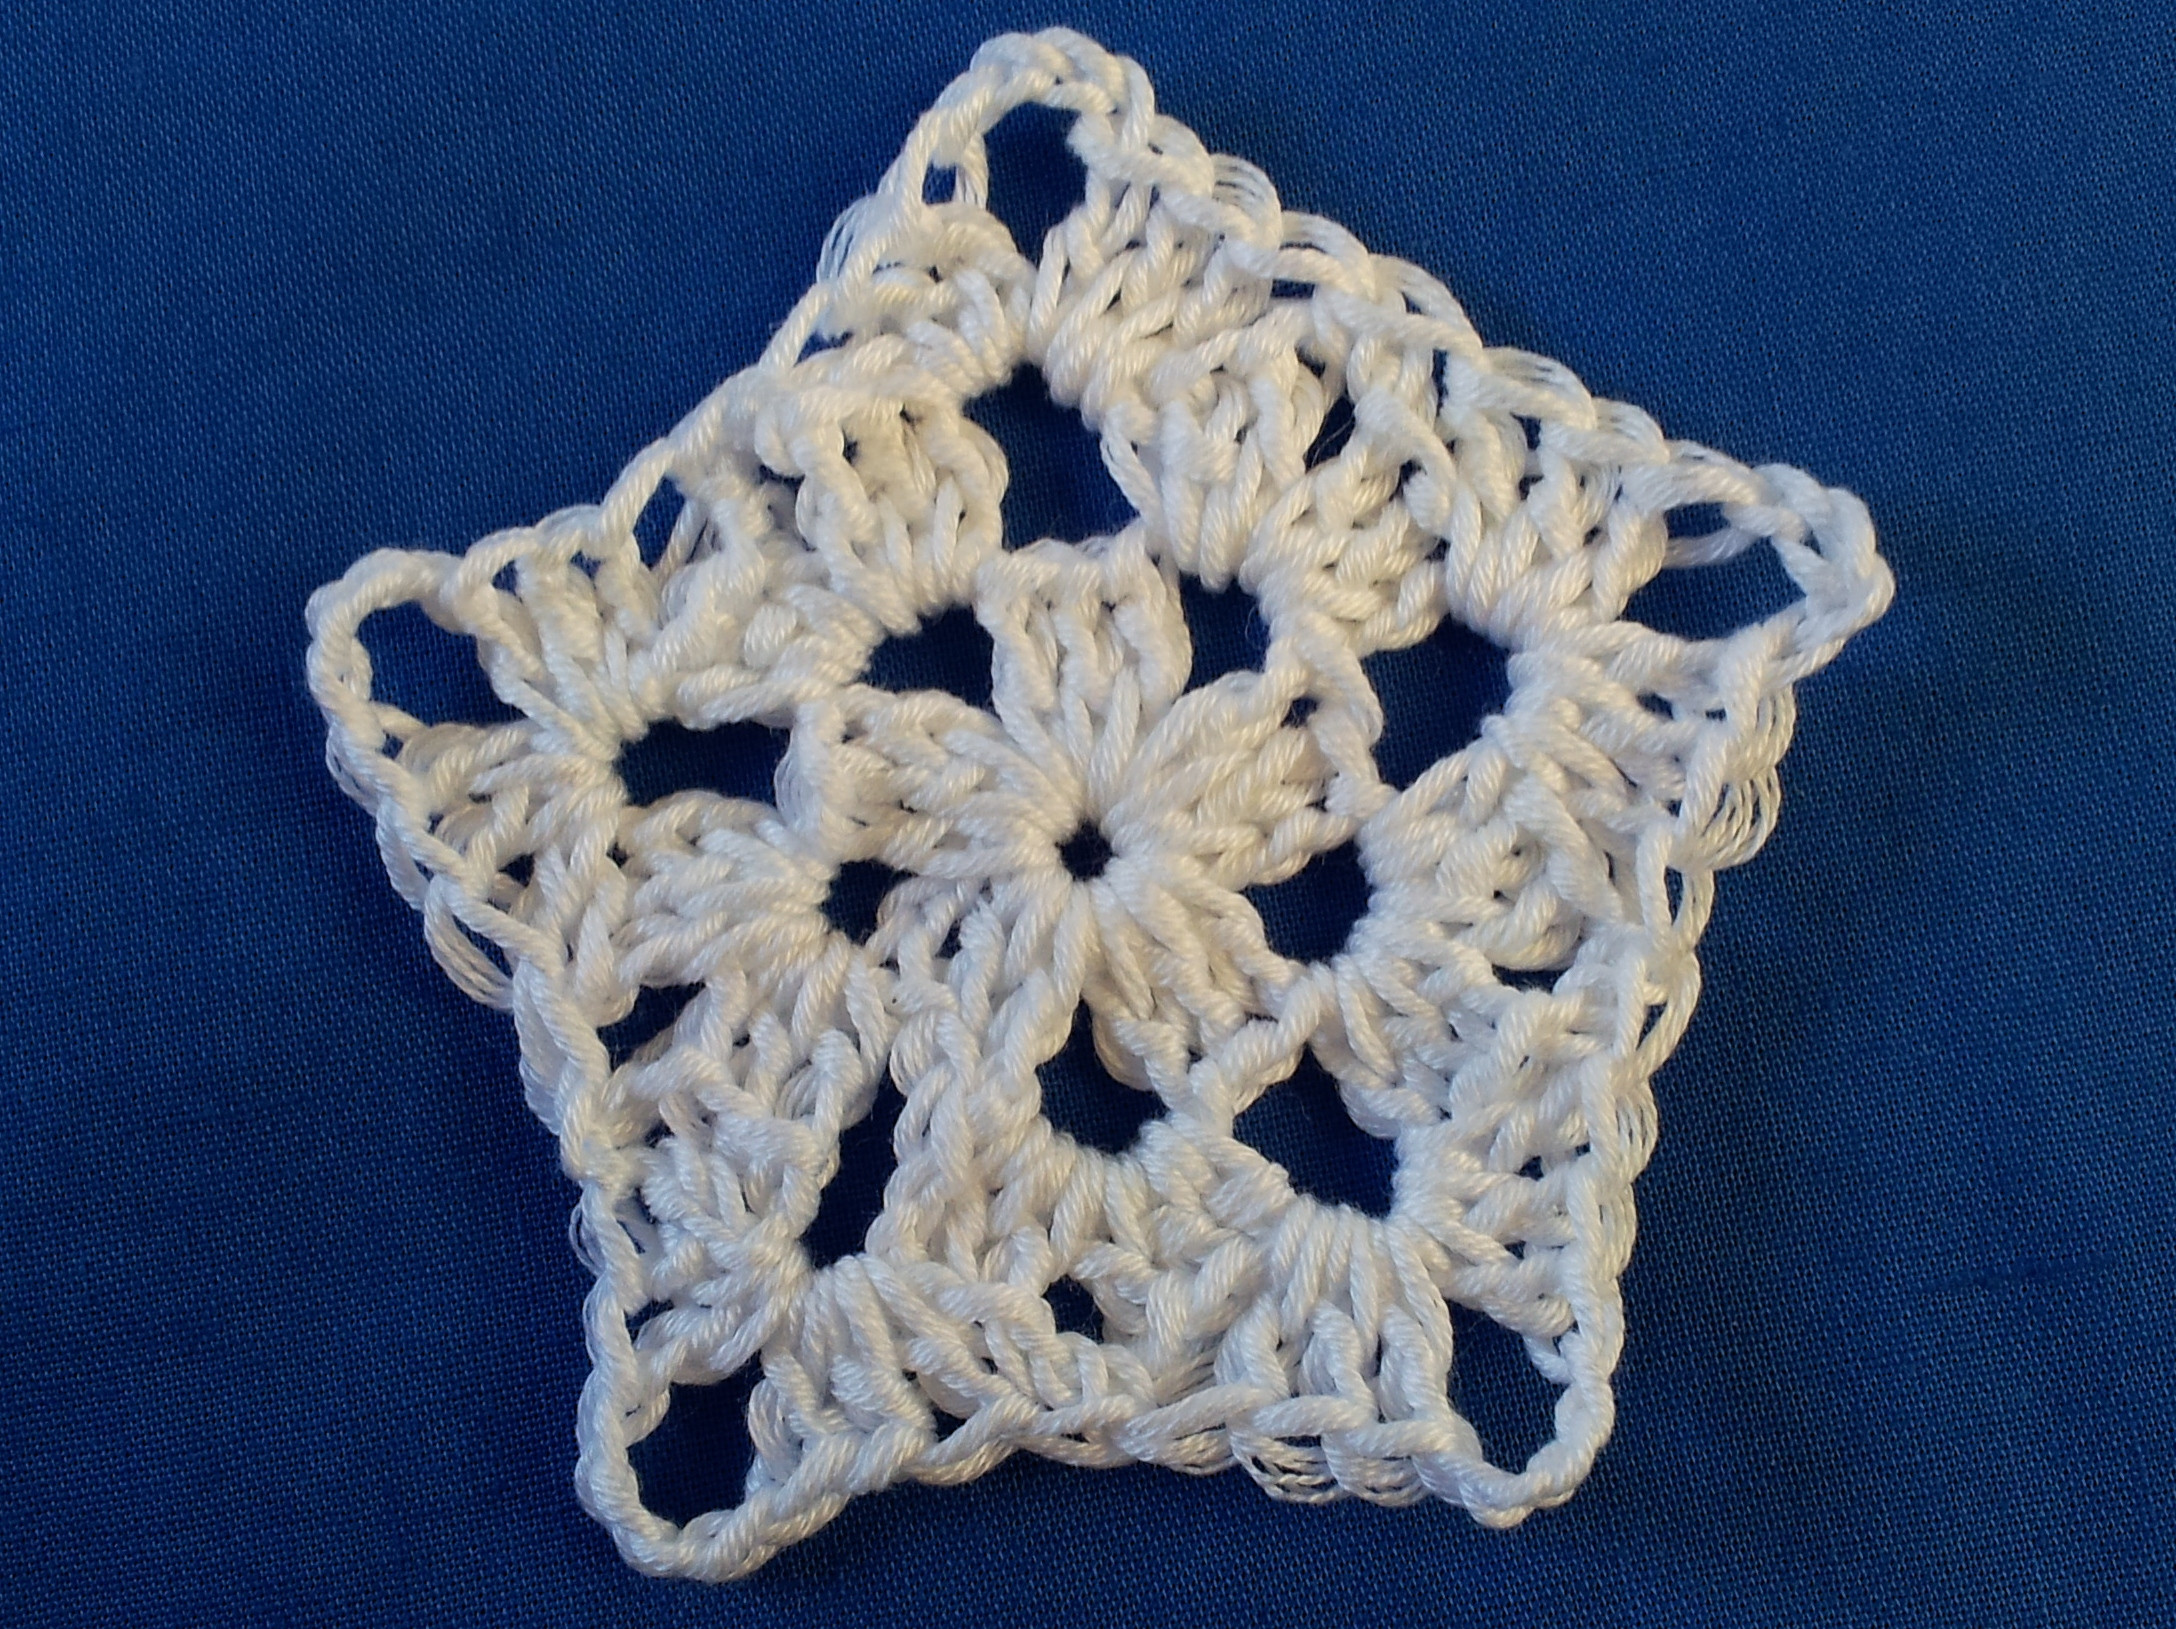 Crochet Patterns Inspirational 33 Crochet Snowflake Patterns Of Charming 50 Models Crochet Patterns